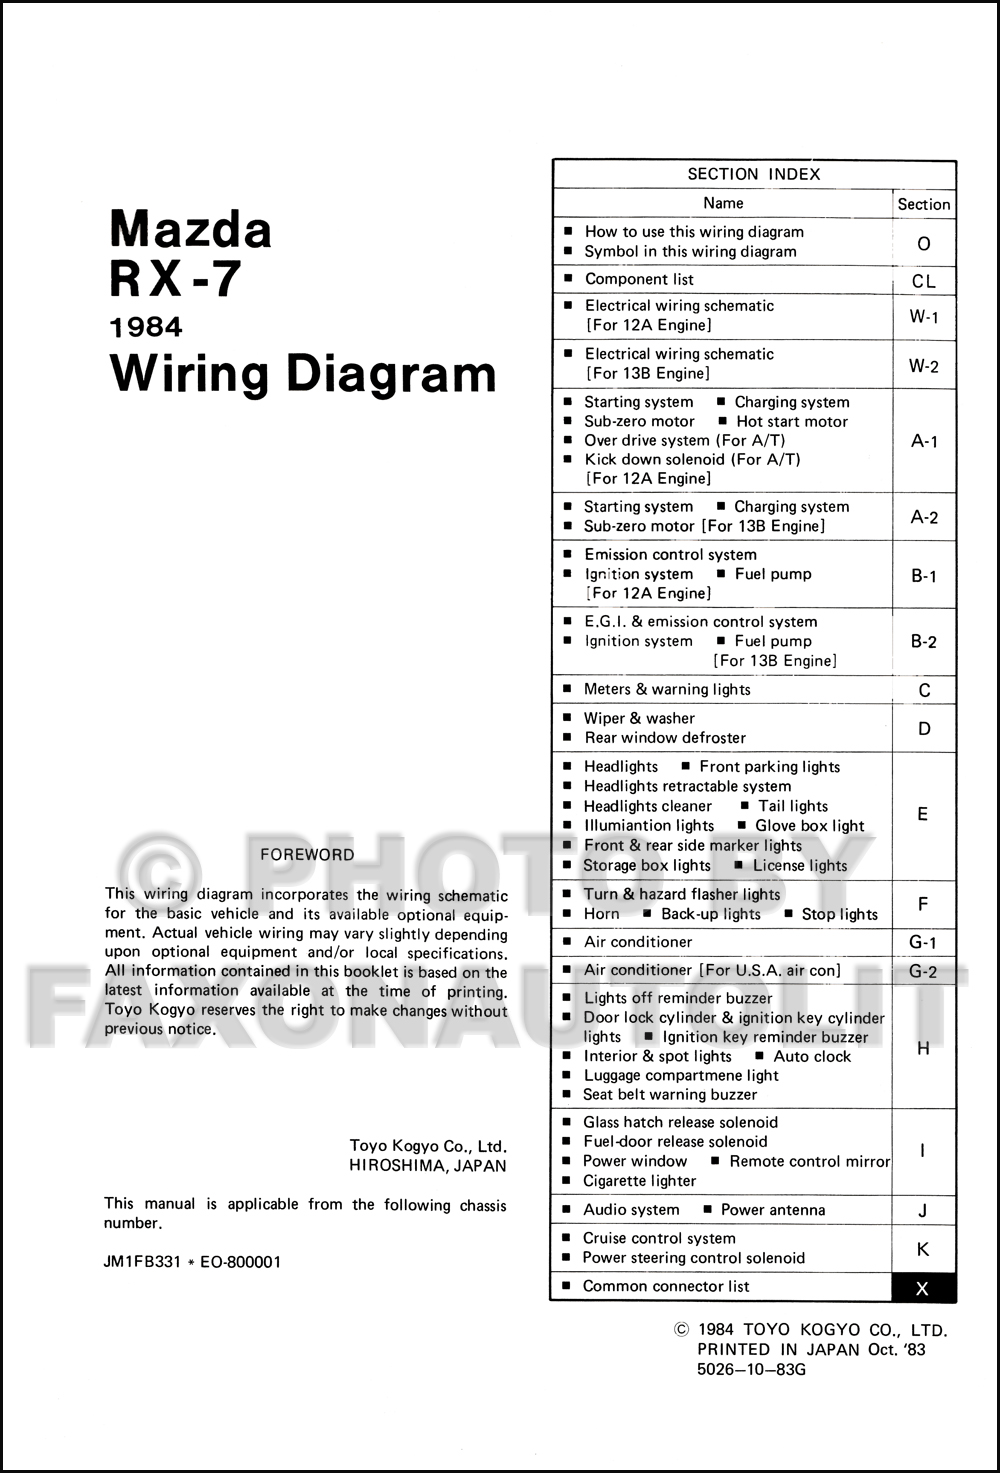 1984 Mazda RX-7 Wiring Diagram Manual Original RX7